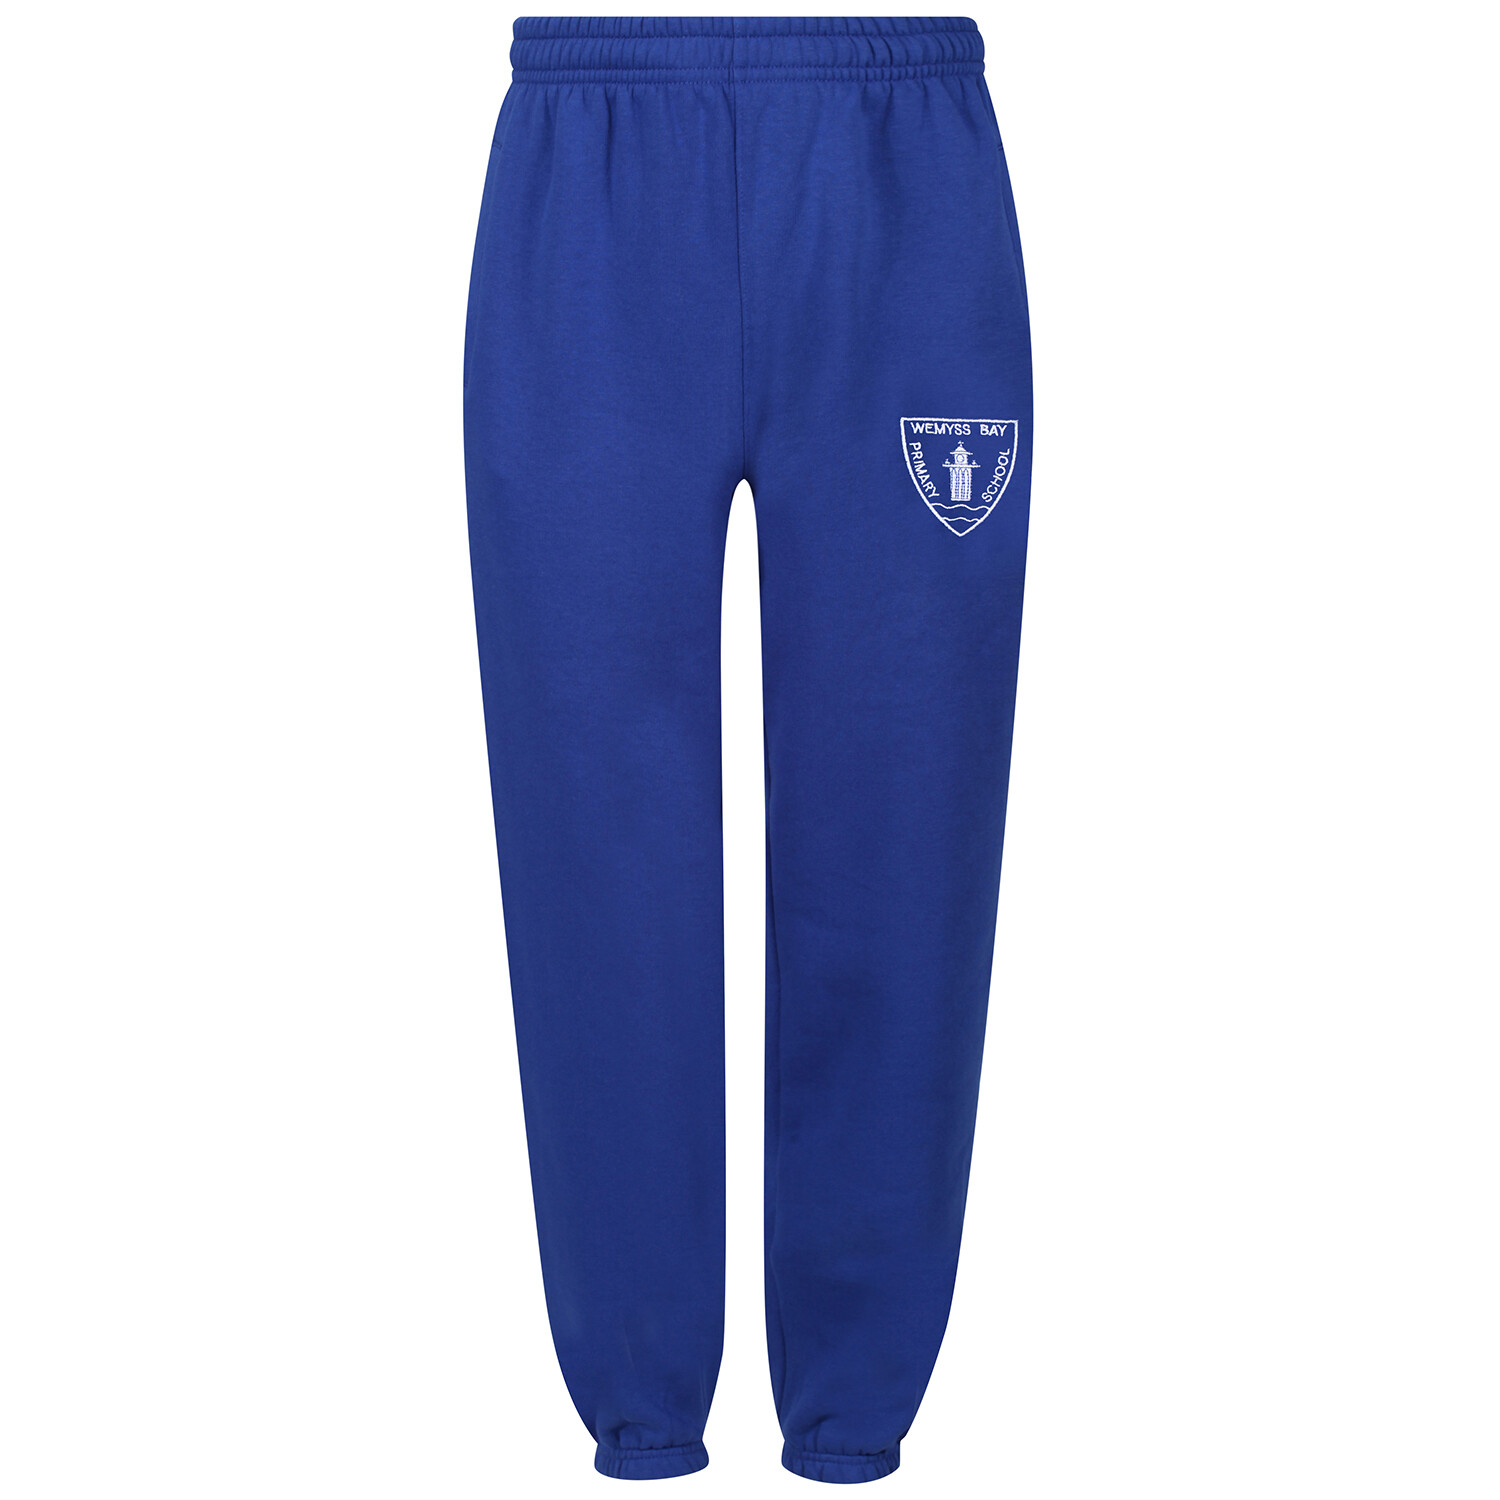 Wemyss Bay Jog Pant for PE & Outdoor Activity